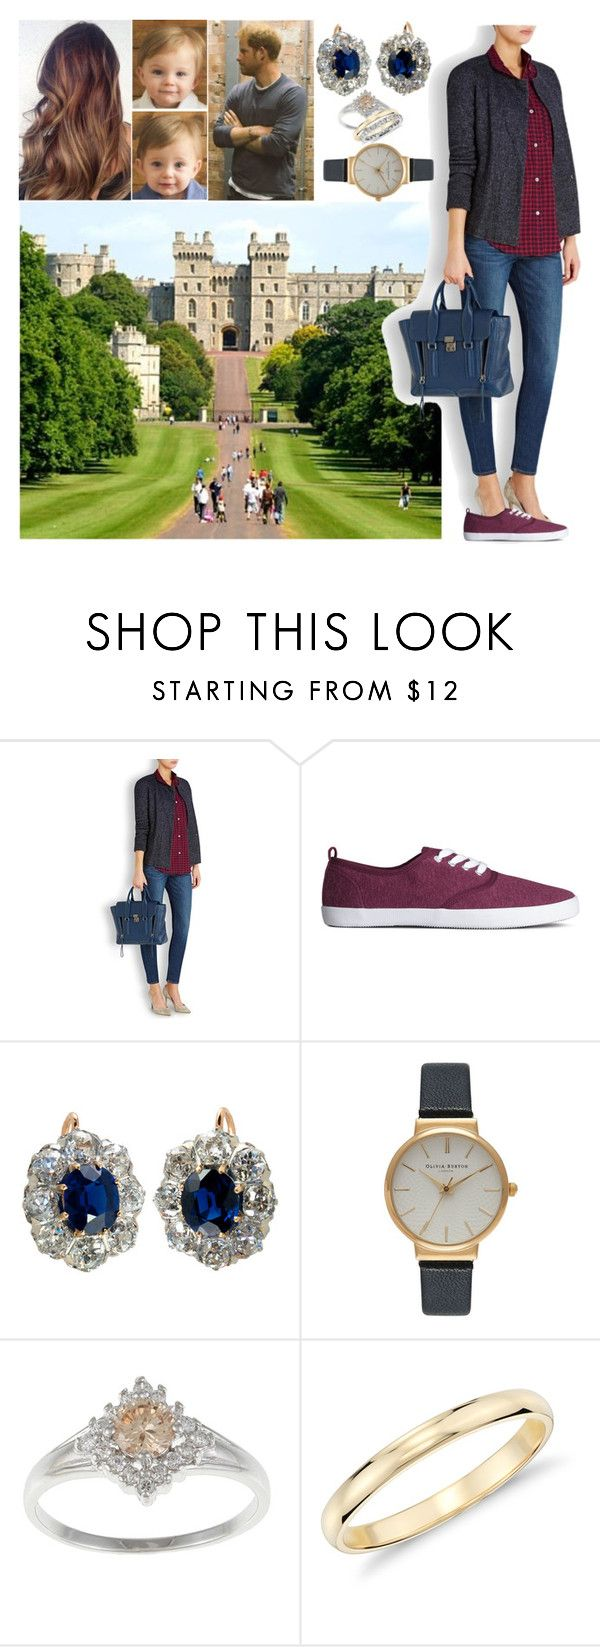 """""""Arriving at Windsor castle to spend the Easter holidays with Harrys family"""" by charlottedebora ❤ liked on Polyvore featuring Étoile Isabel Marant, H&M, Olivia Burton and Blue Nile"""